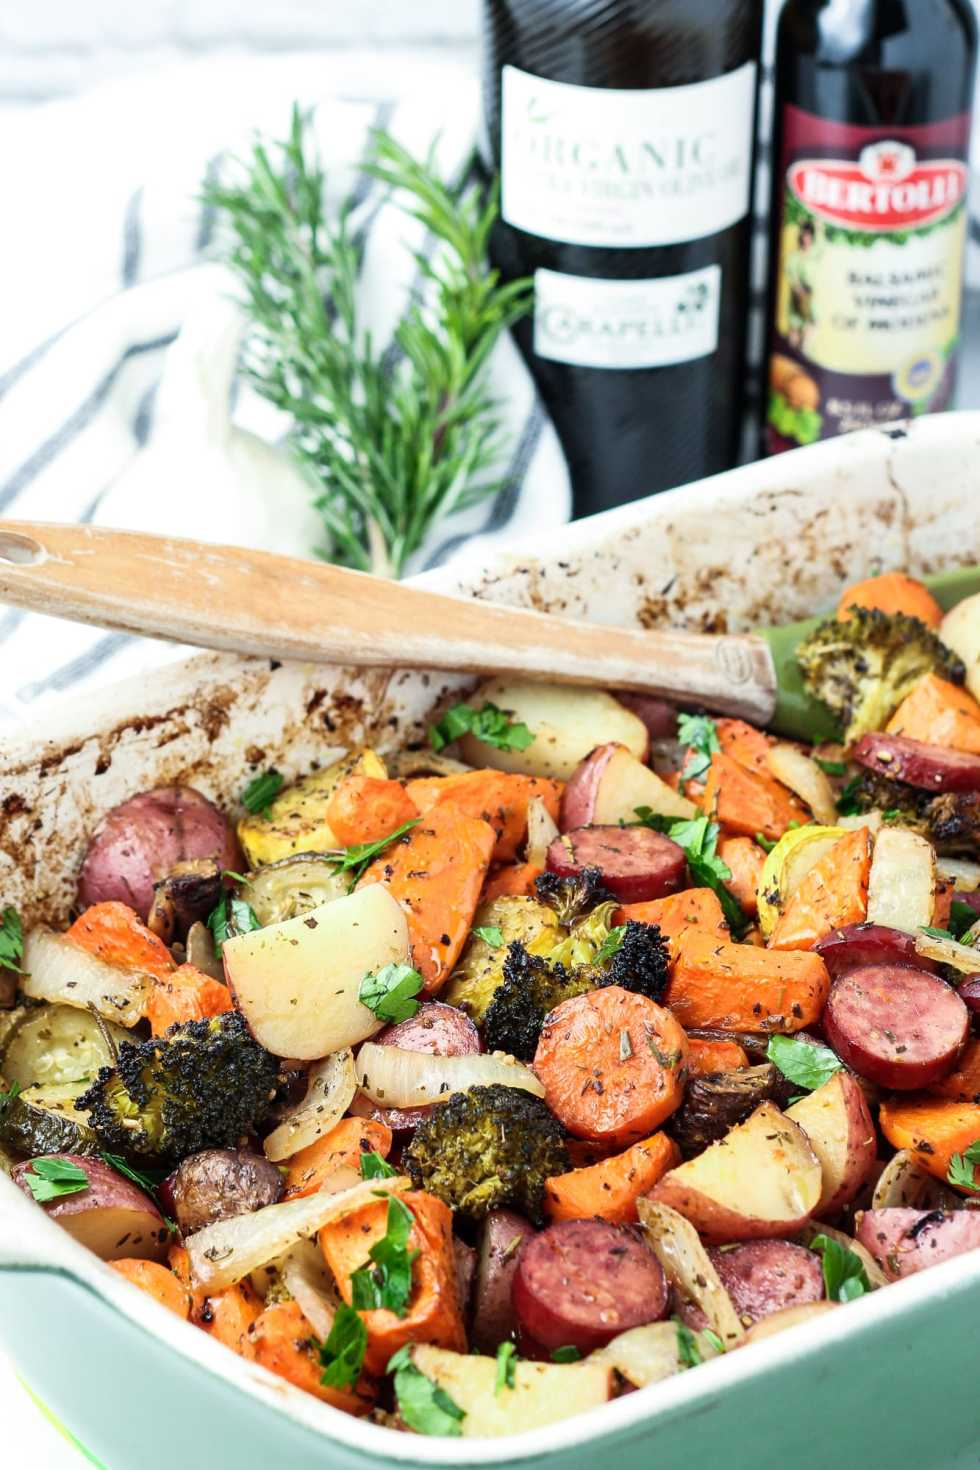 Roasted veggies in a baking dish